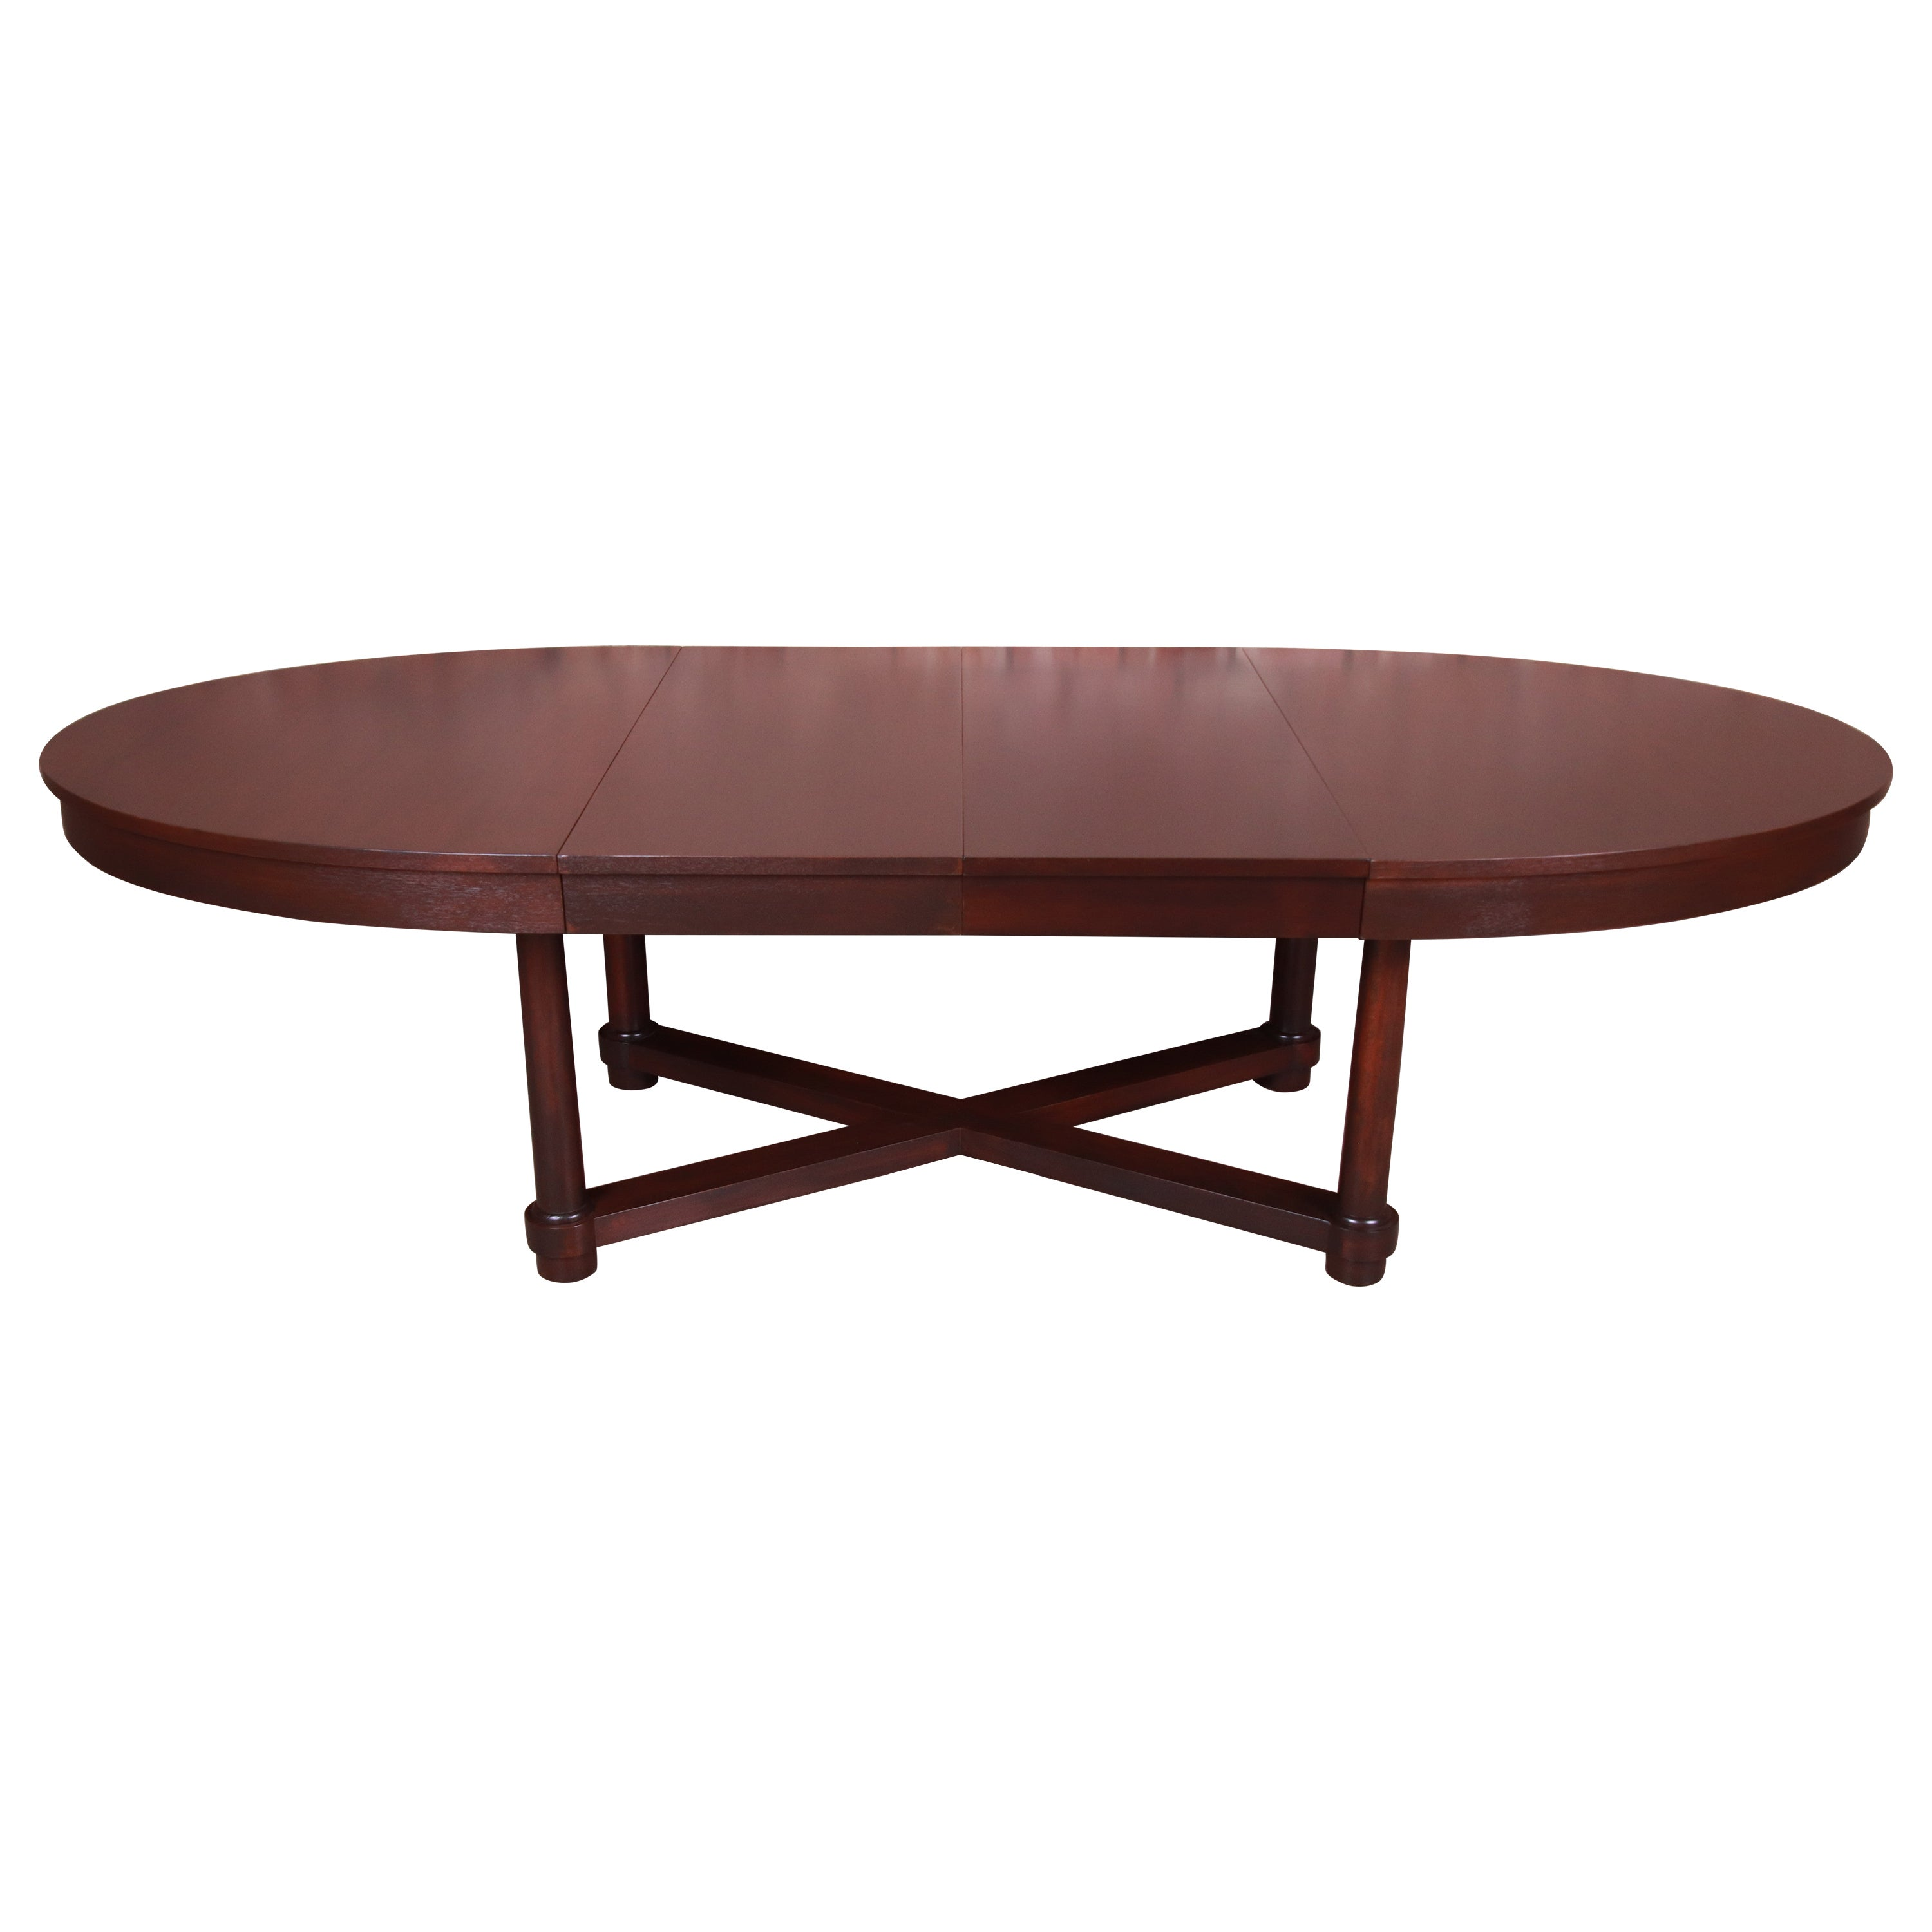 Barbara Barry for Baker Modern Mahogany Extension Dining Table, Newly Refinished